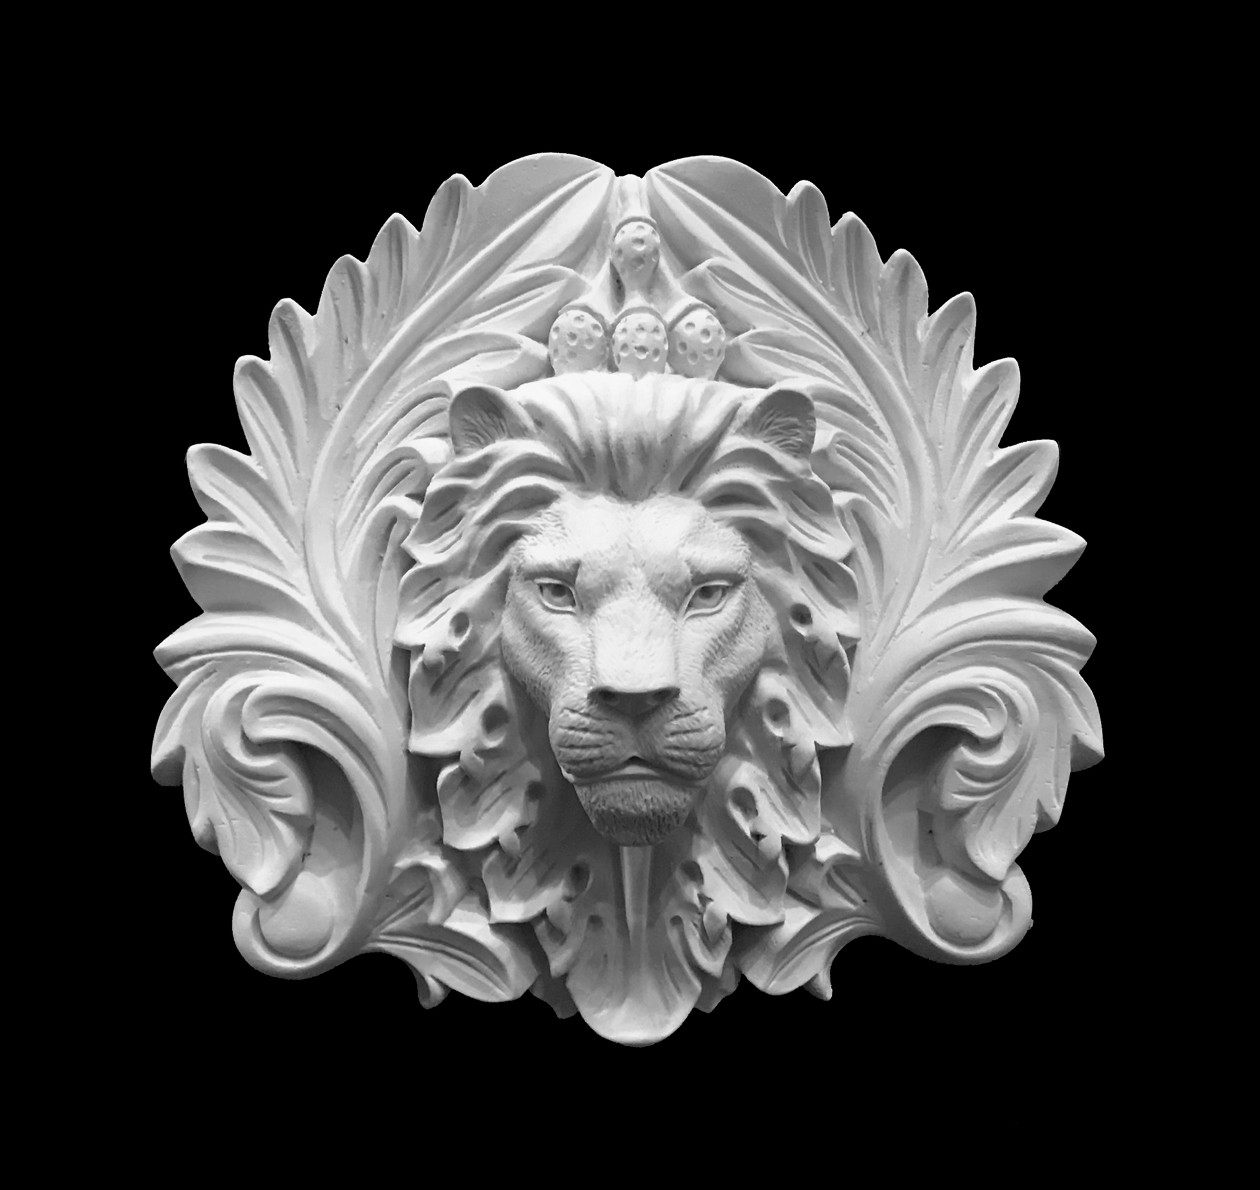 CP-214 Lion Face and Acanthus Leaf Resin Center